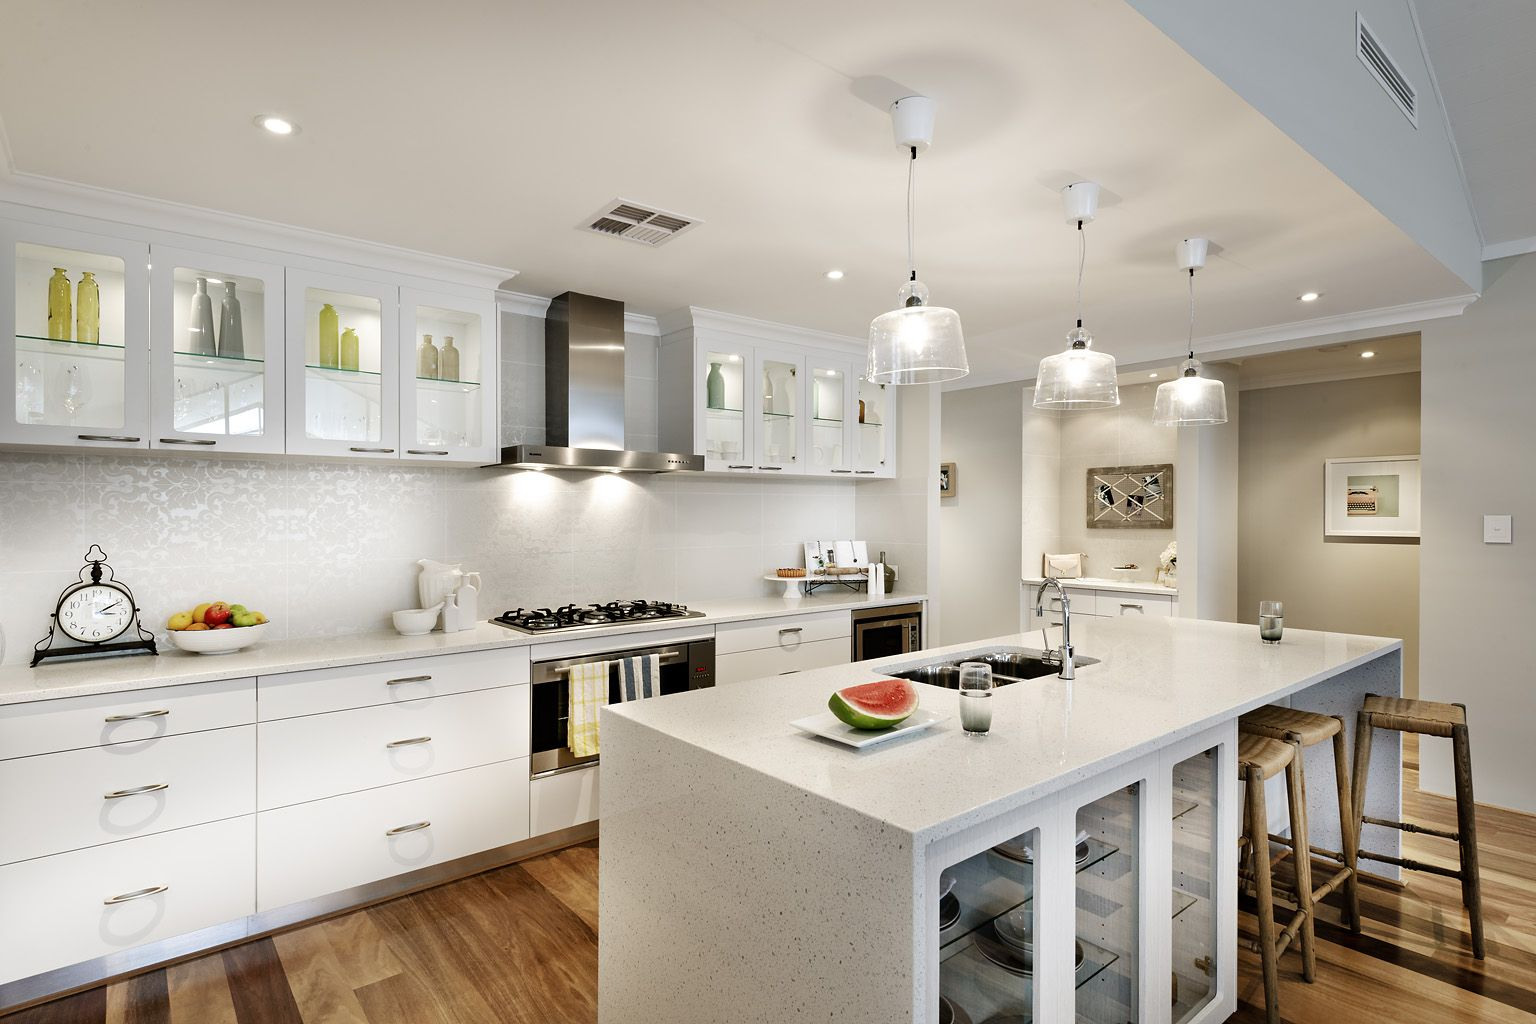 white wood kitchen cabinets - http://www.buildpremier.com/wp-content ...